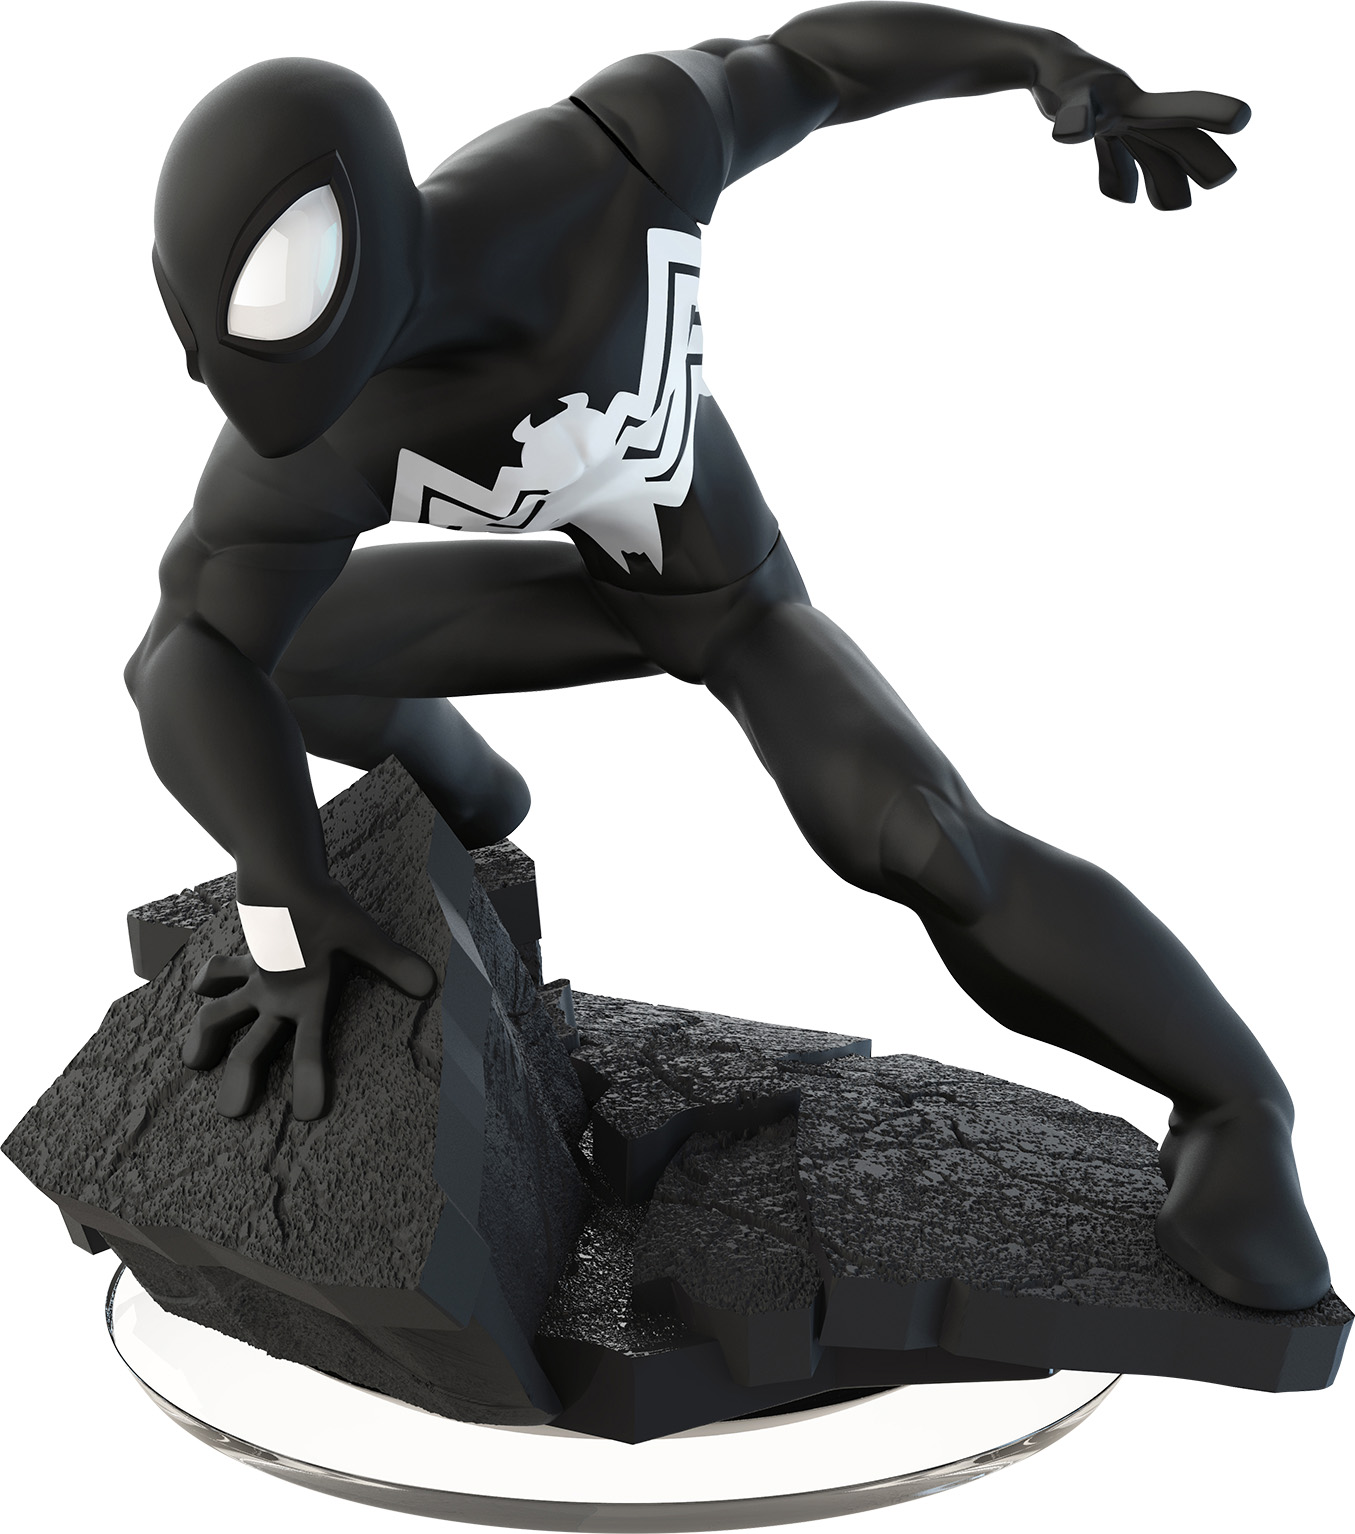 Disney Infinity 3.0 Figure: Marvel's Black Suit Spider-Man QG9-00109